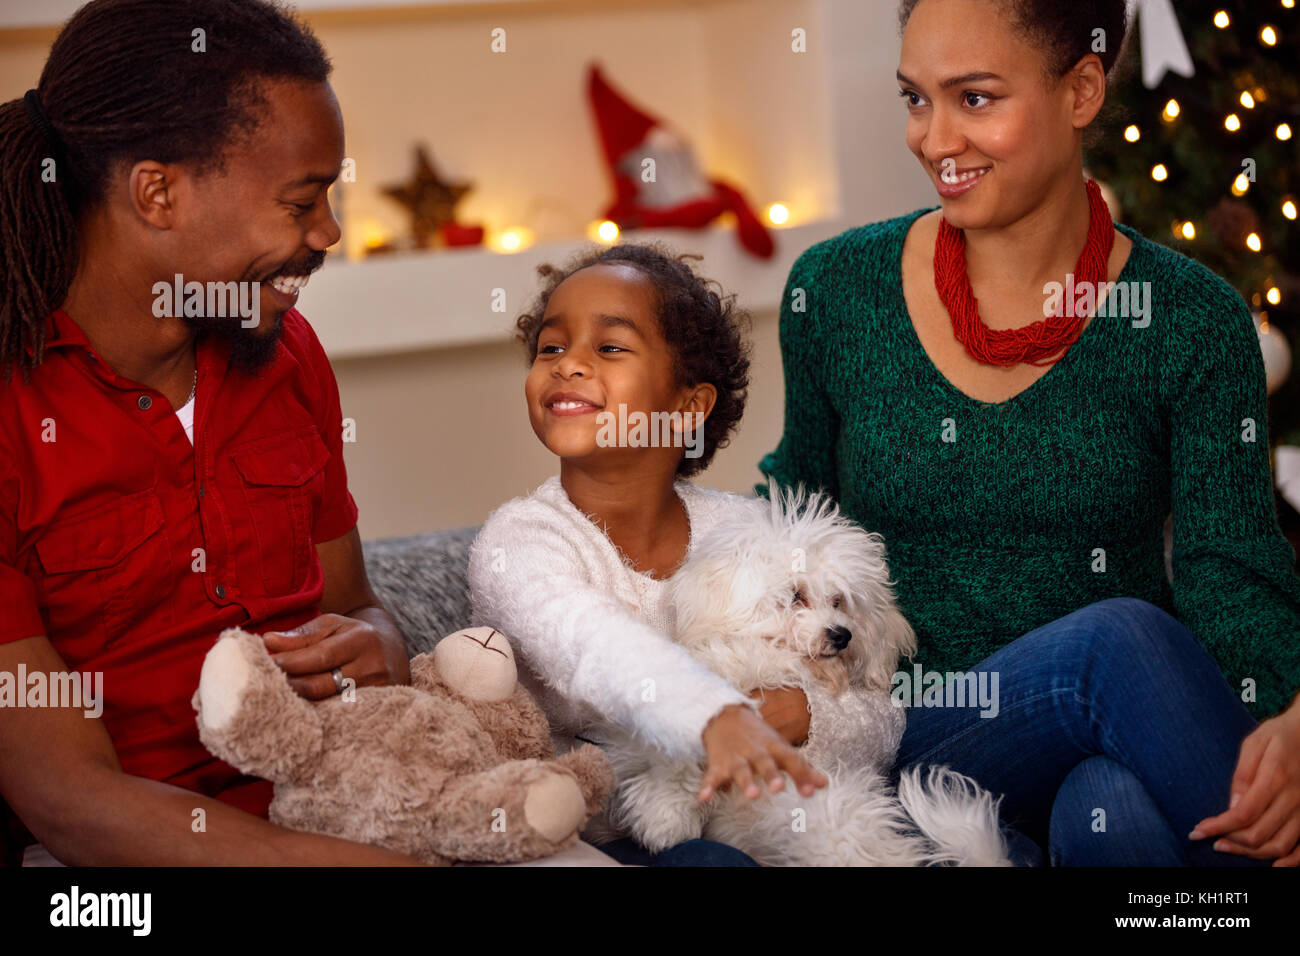 young smiling black family with presents at christmas stock image - Black Family Christmas Pictures